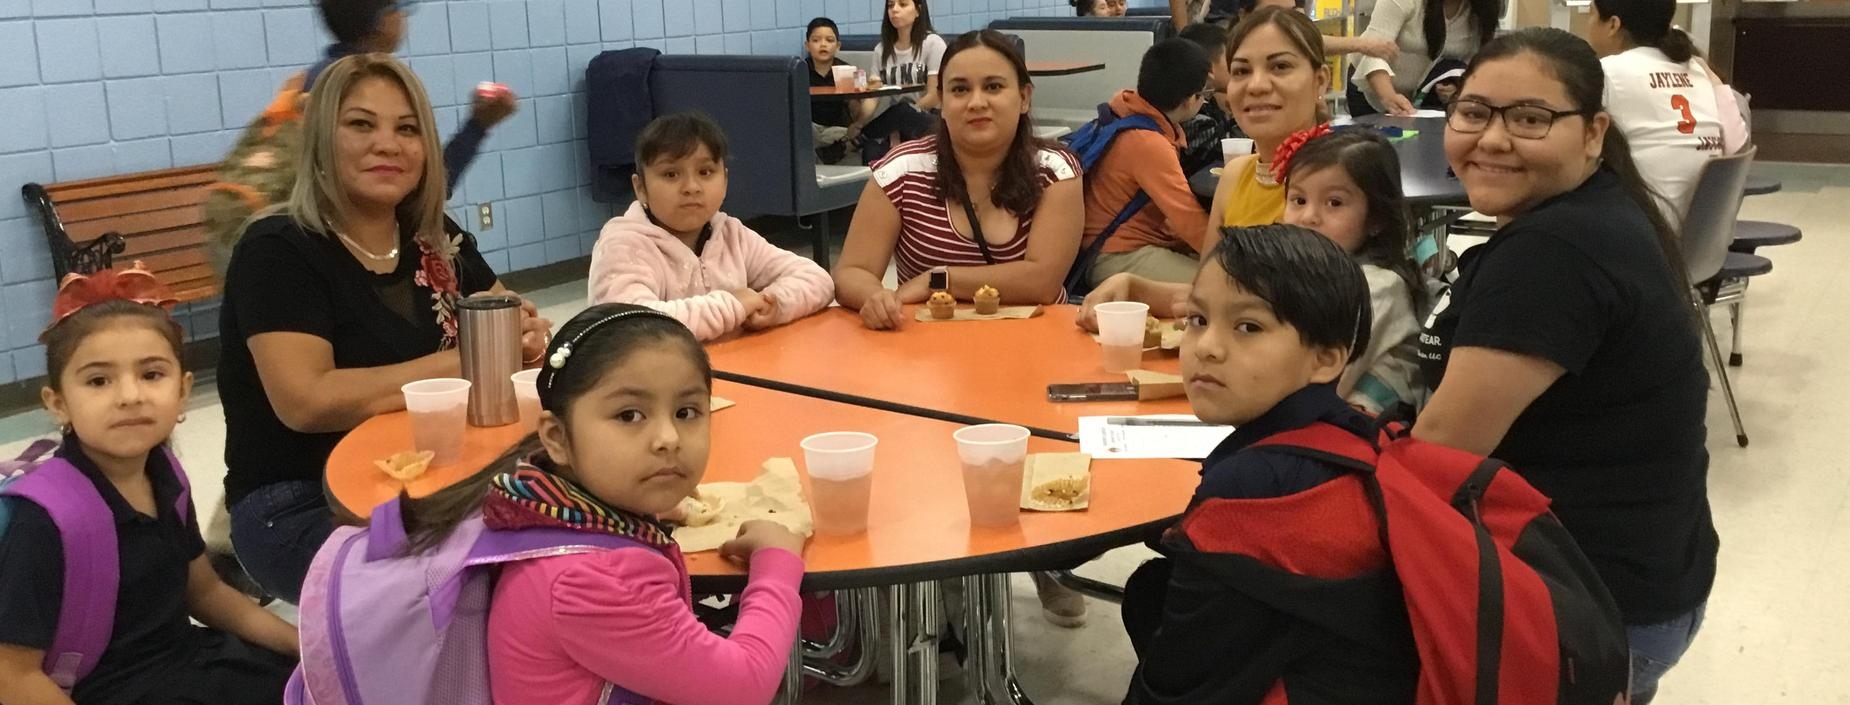 Image of family at Muffins with Mom Celebration